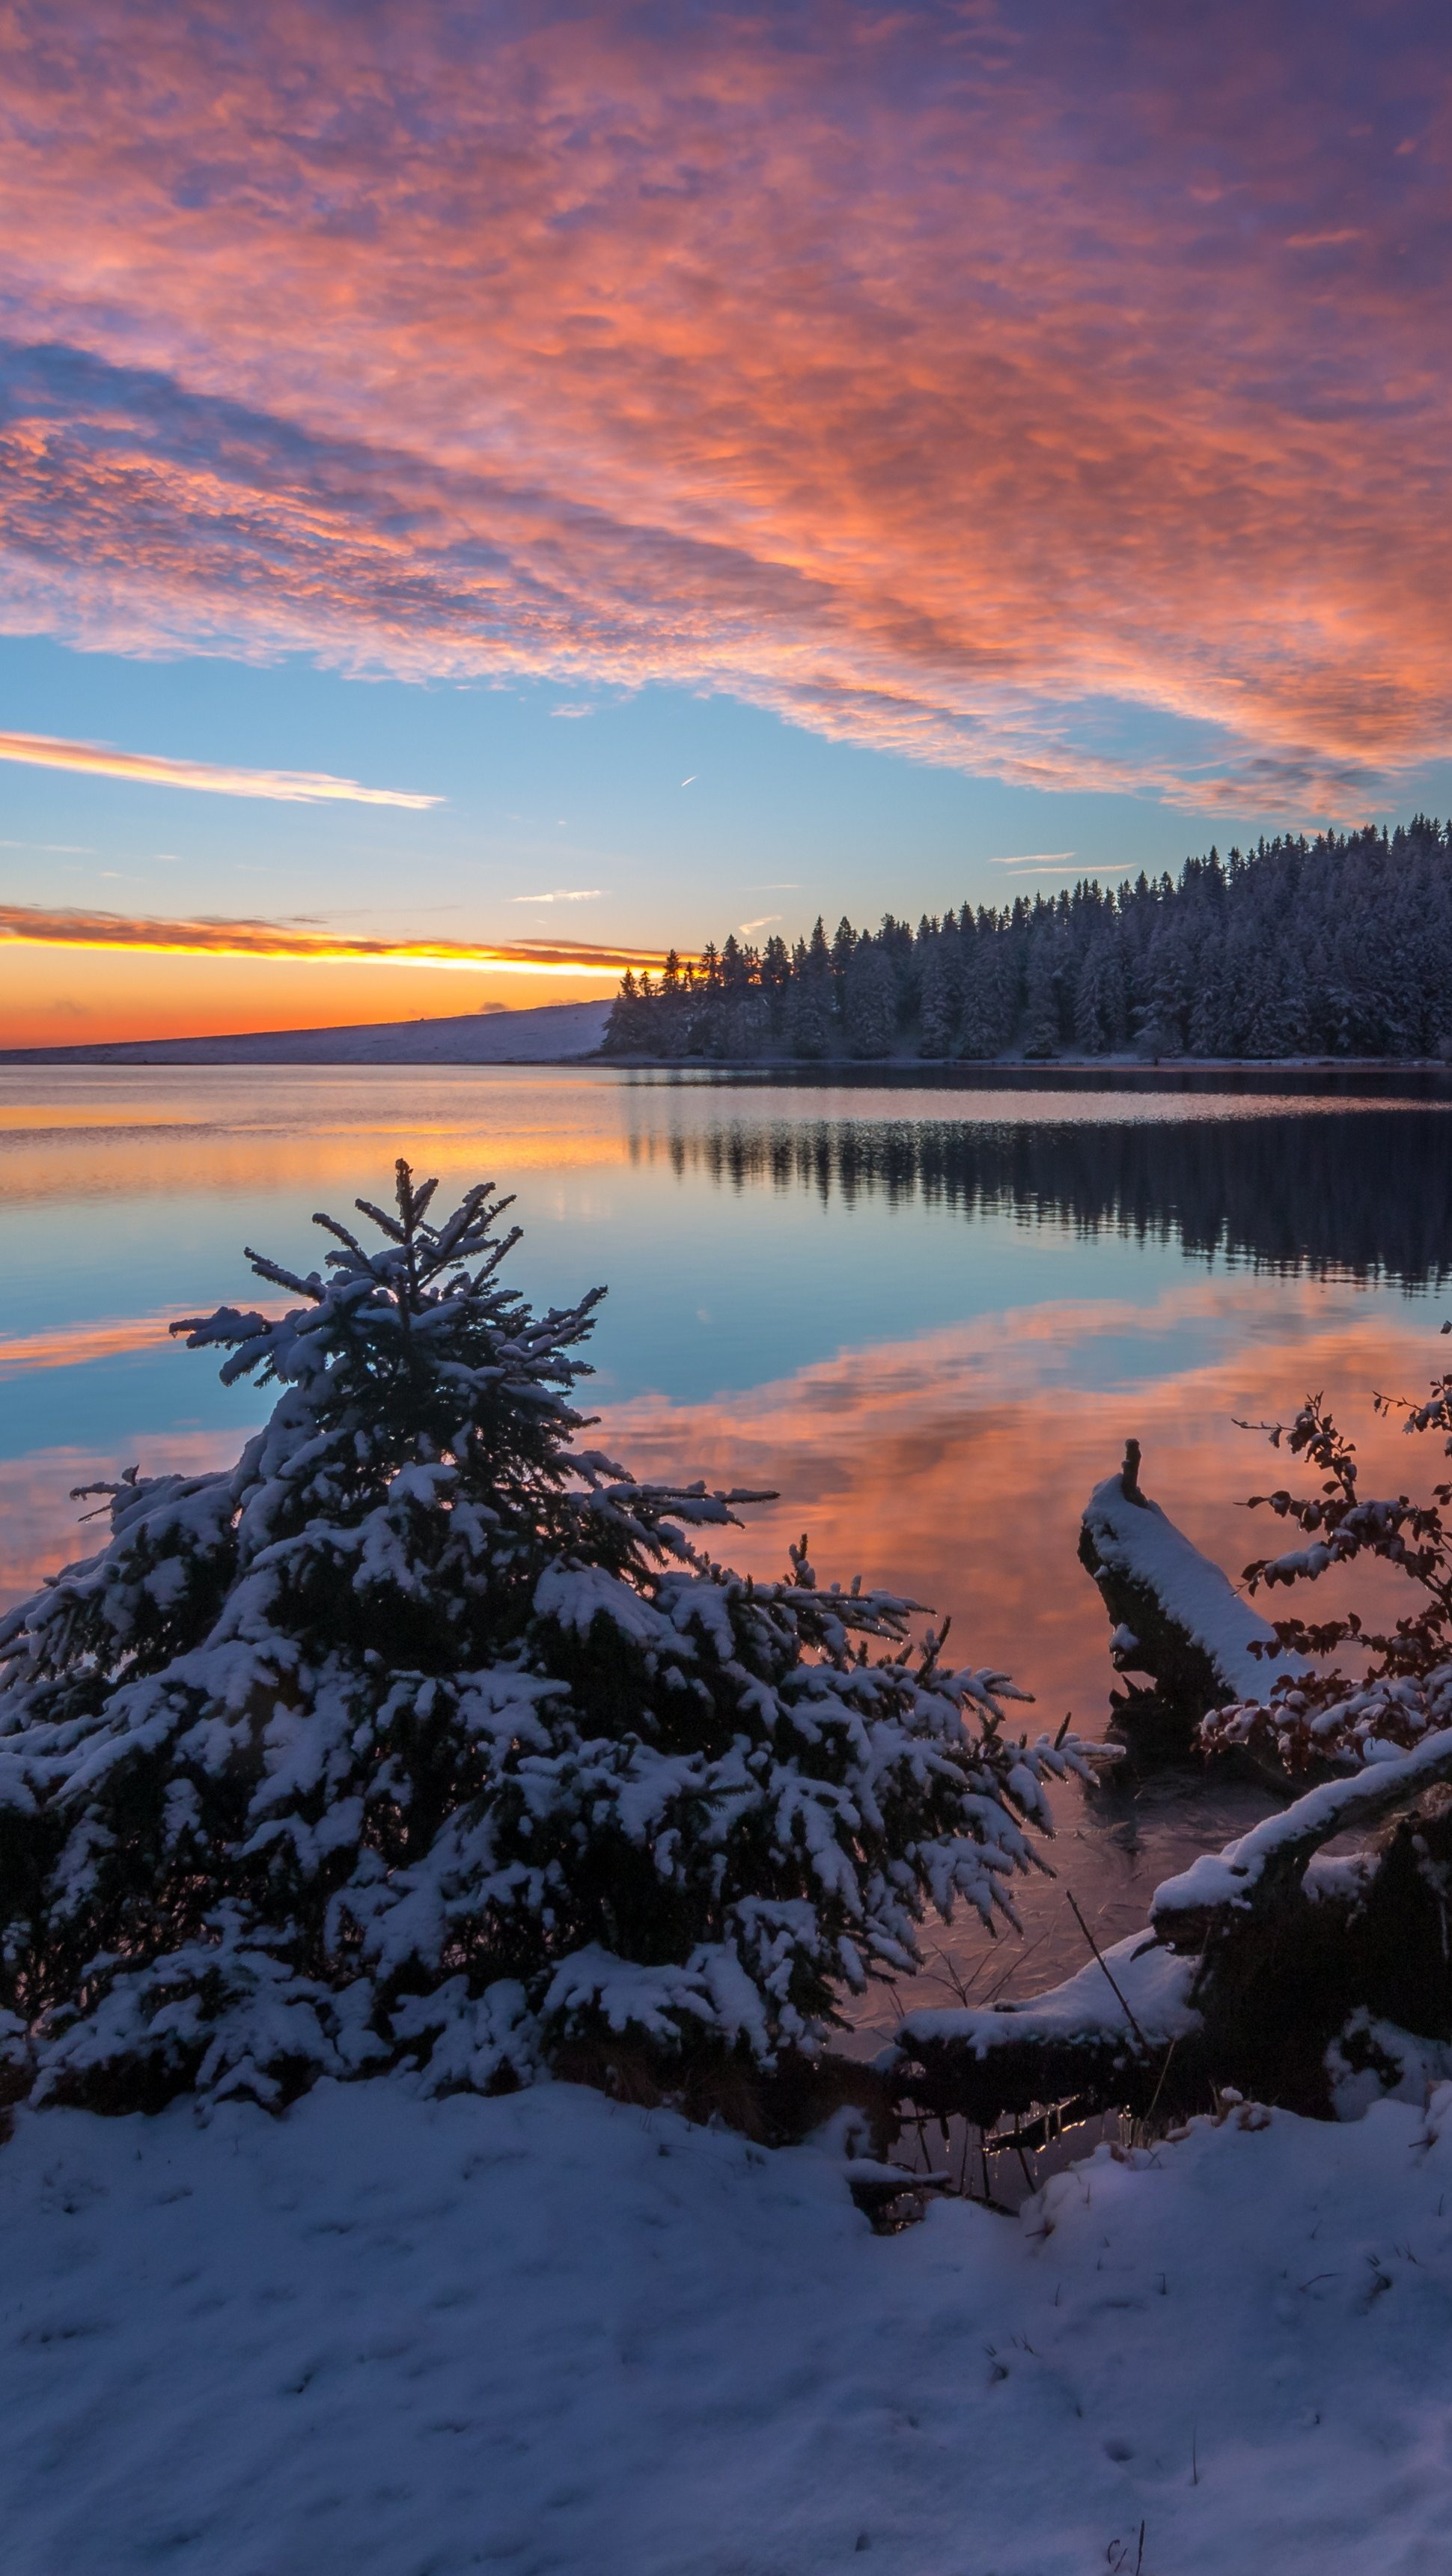 Wallpaper Lake in the snow at sunset Vertical